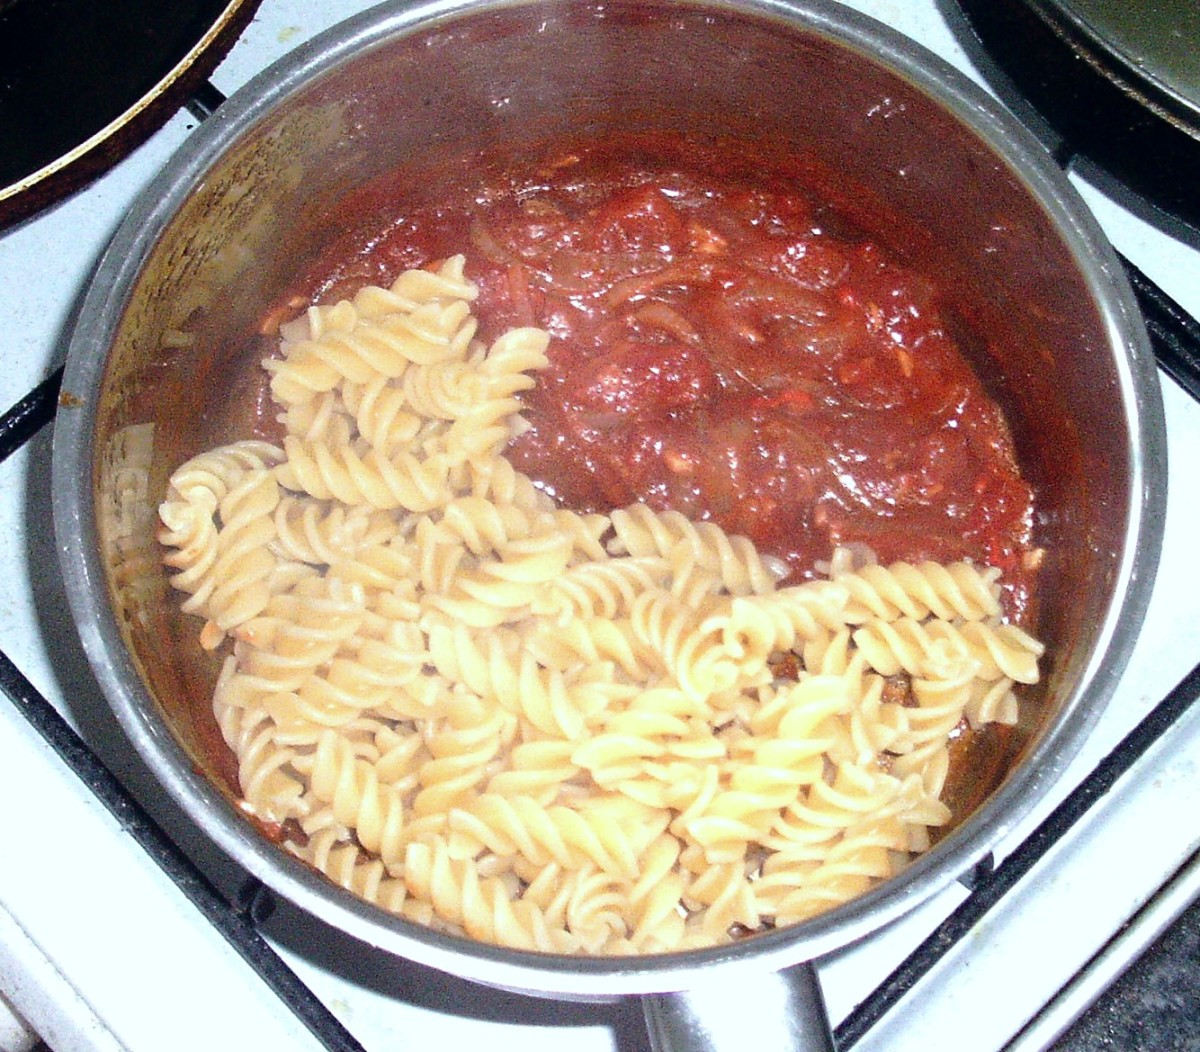 Pasta is added to spicy tomato sauce